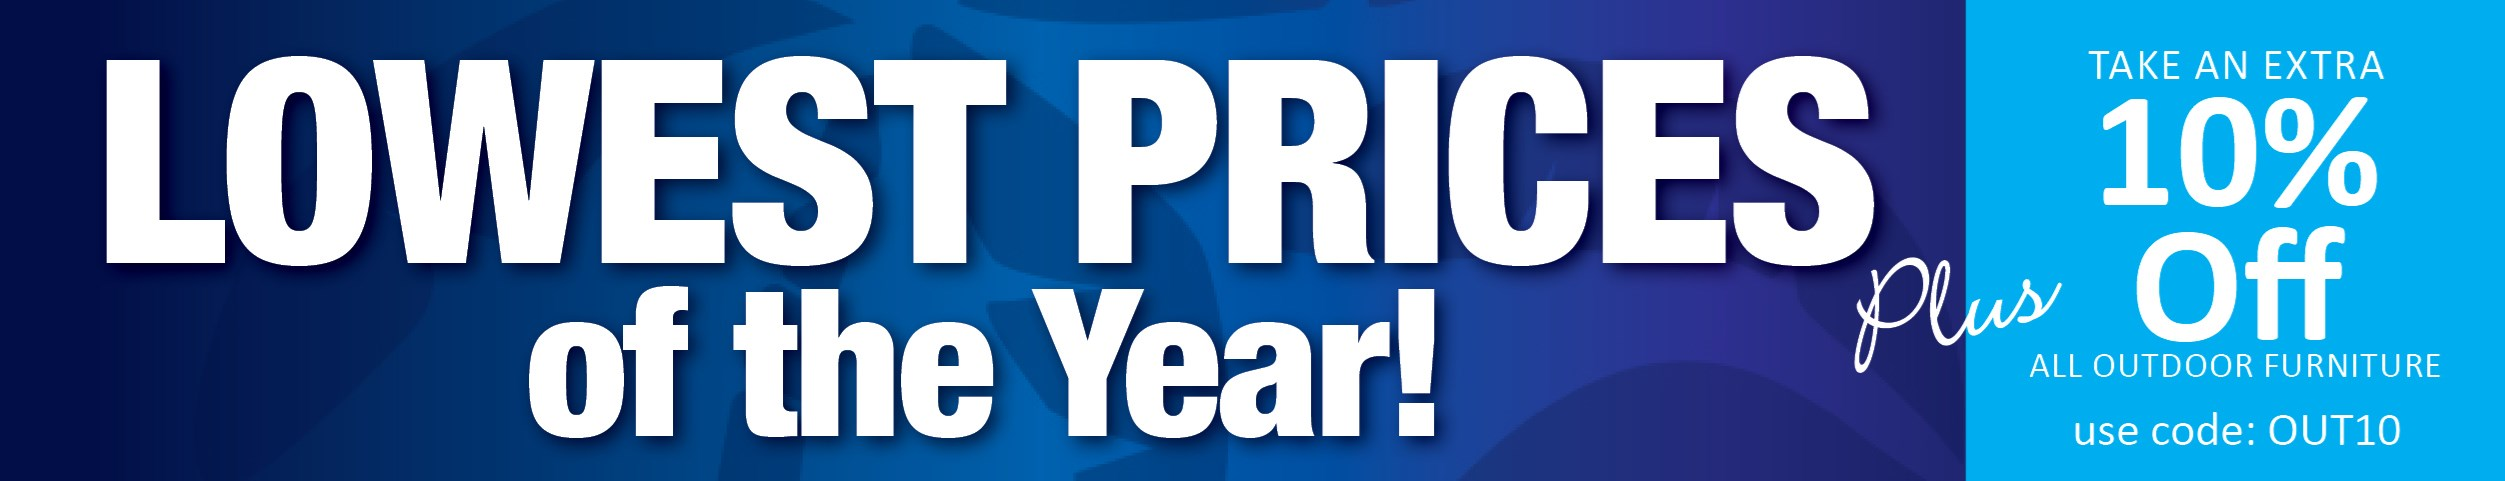 Lowest Prices of the Year